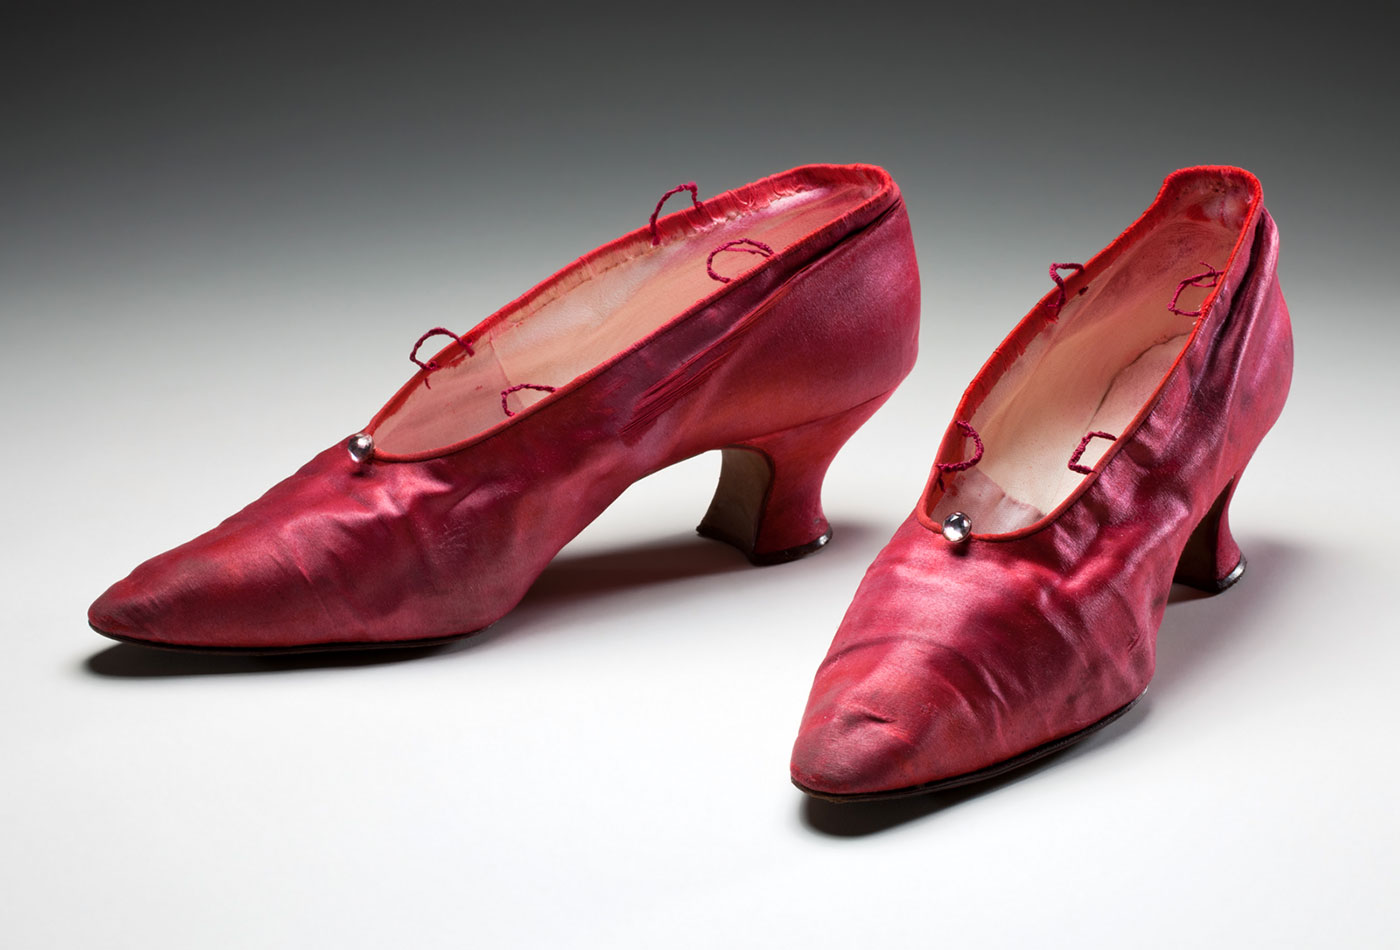 A pair of pink-dyed satin shoes, with a clear bead at cenre top, a Louis heel, narrow pointed toe and two thread loops on each side of the foot opening, for ankle ties.